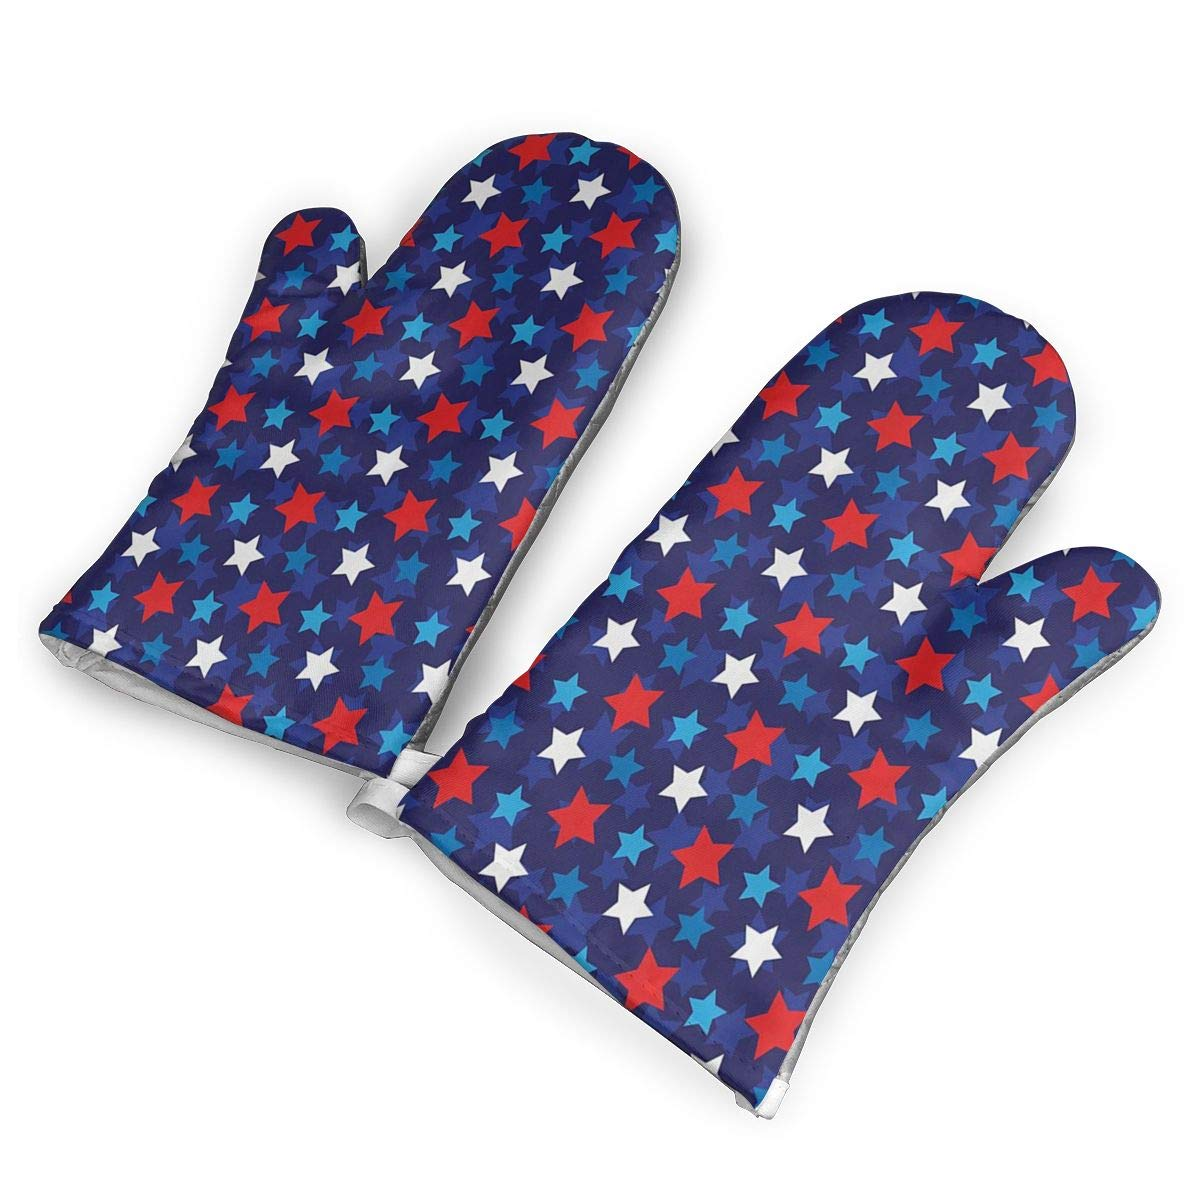 VshiXzno American Flag Inspired Patriotic Oven Mitts,Professional Heat Resistant to 500?? F,Non-Slip Kitchen Oven Gloves for Cooking,Baking,Grilling,Barbecue Potholders